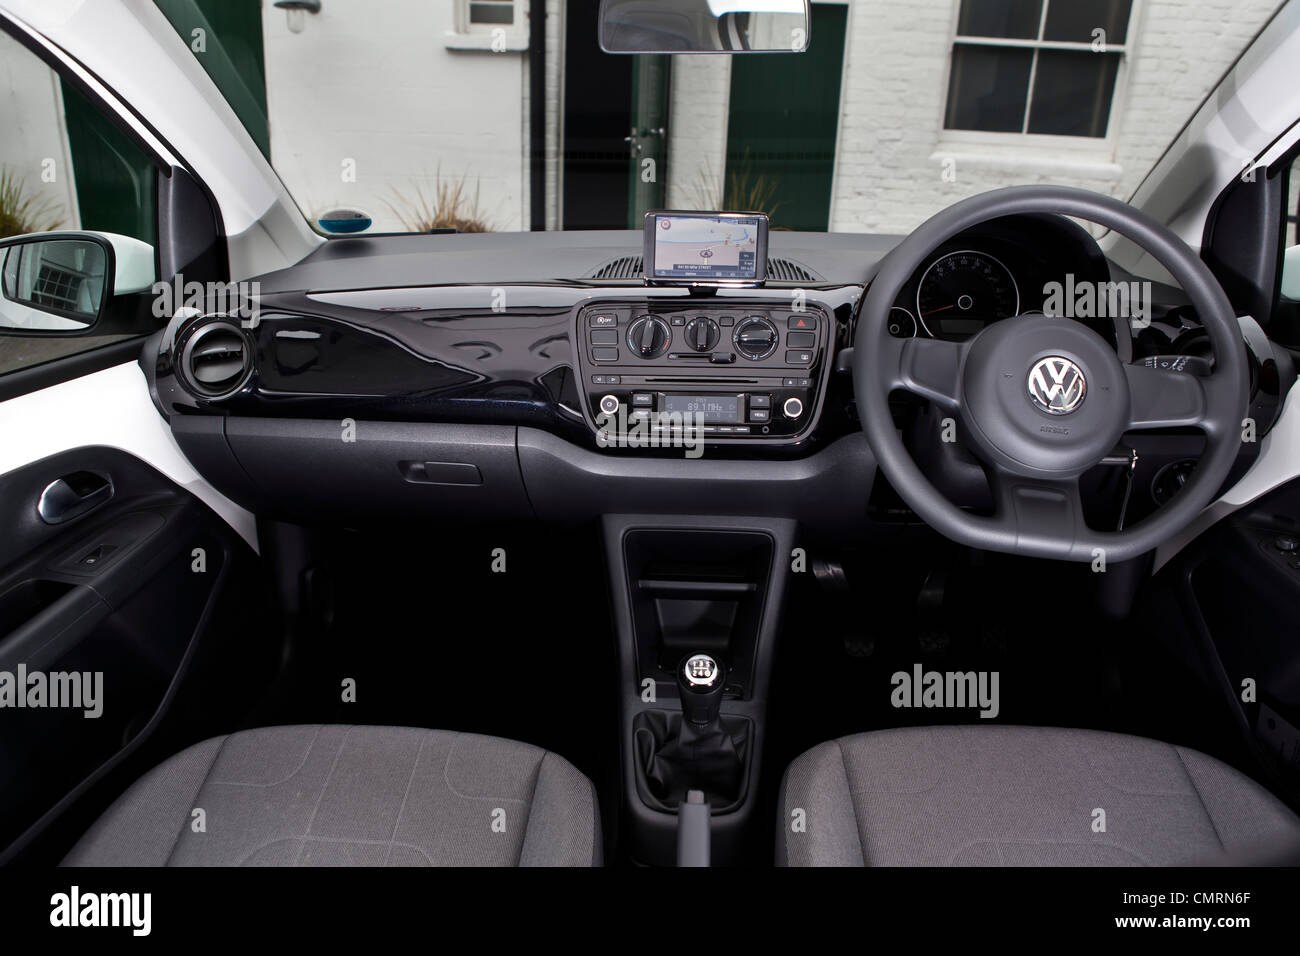 Interieur Vw Up 2012 Volkswagen Up Wichtigsten Interieur Stockfoto Bild